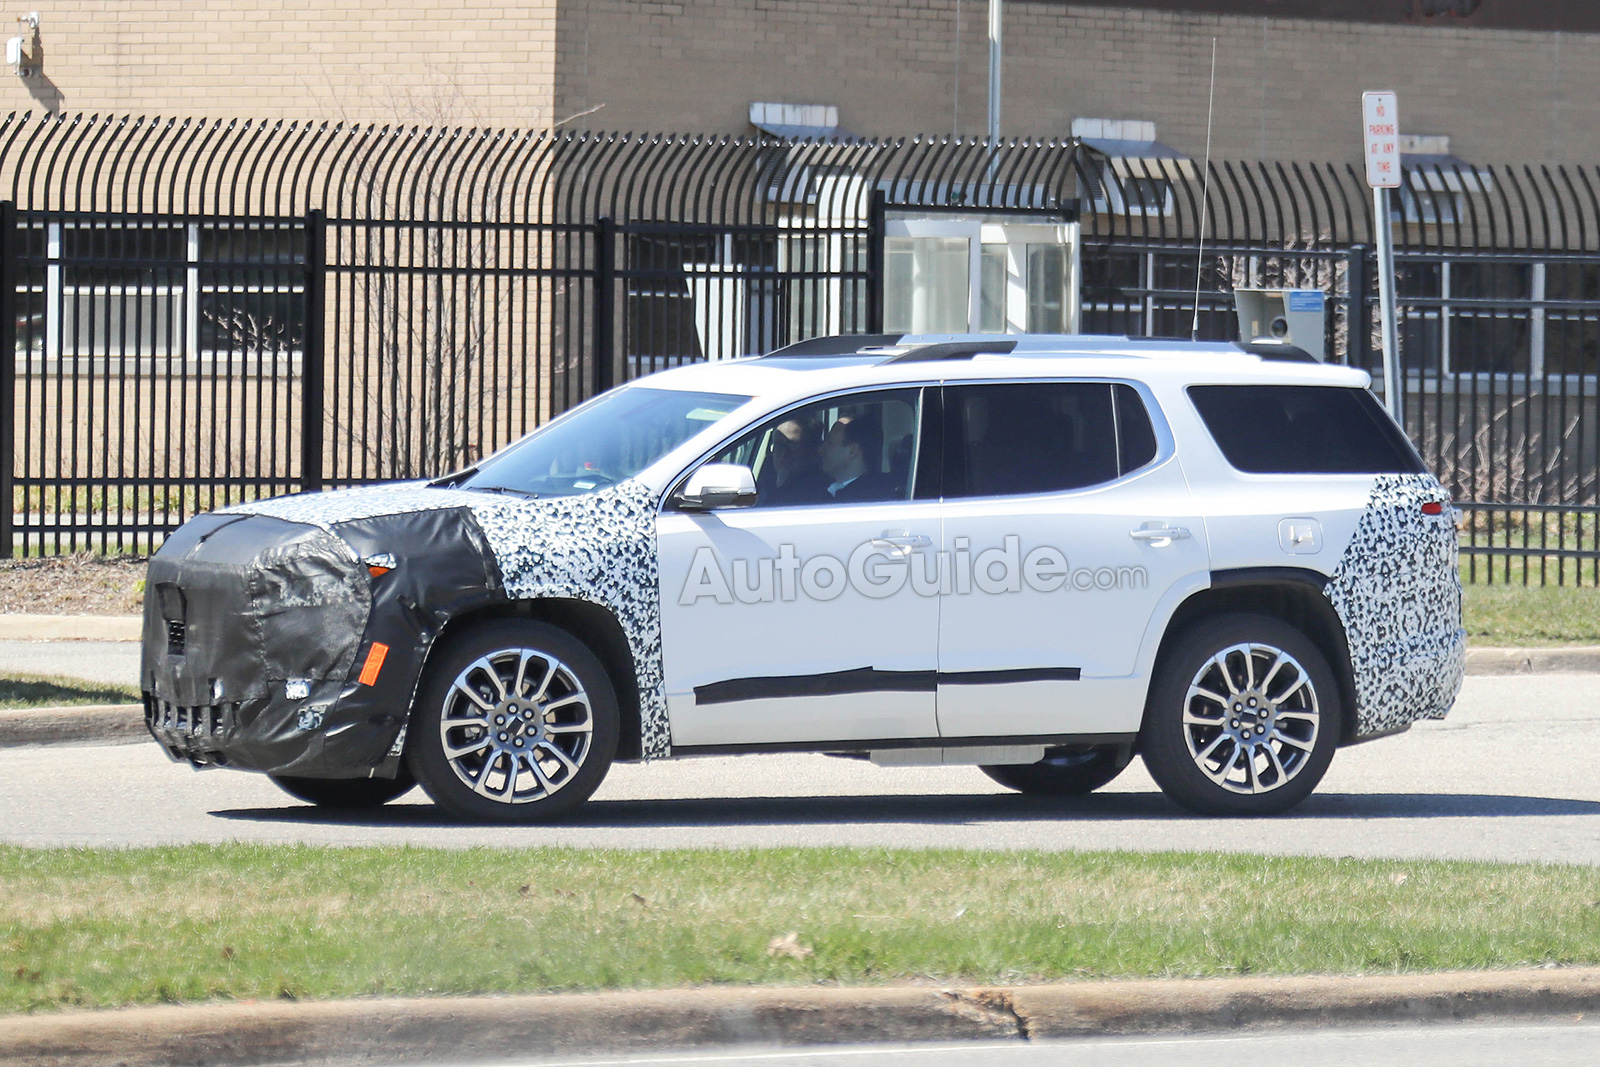 2020 GMC Acadia: Mid-update, News, Release >> 2020 Gmc Acadia Spied Testing Its Mid Cycle Refresh